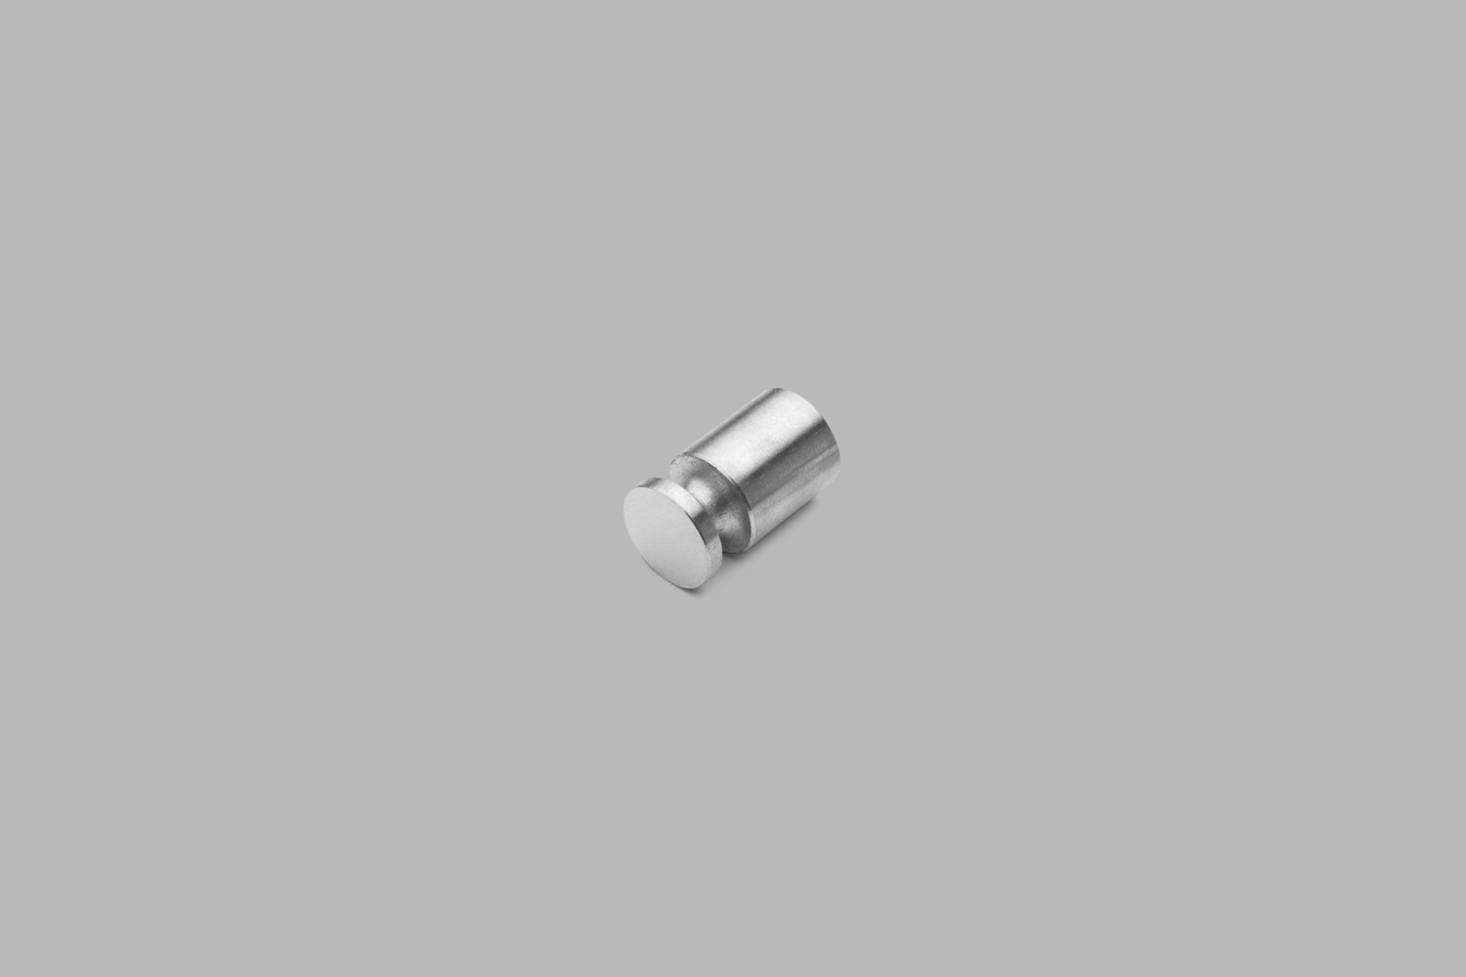 The D Line Knud Holscher Coat Hook in Satin Stainless Steel is $47.25 at Better Building Hardware.